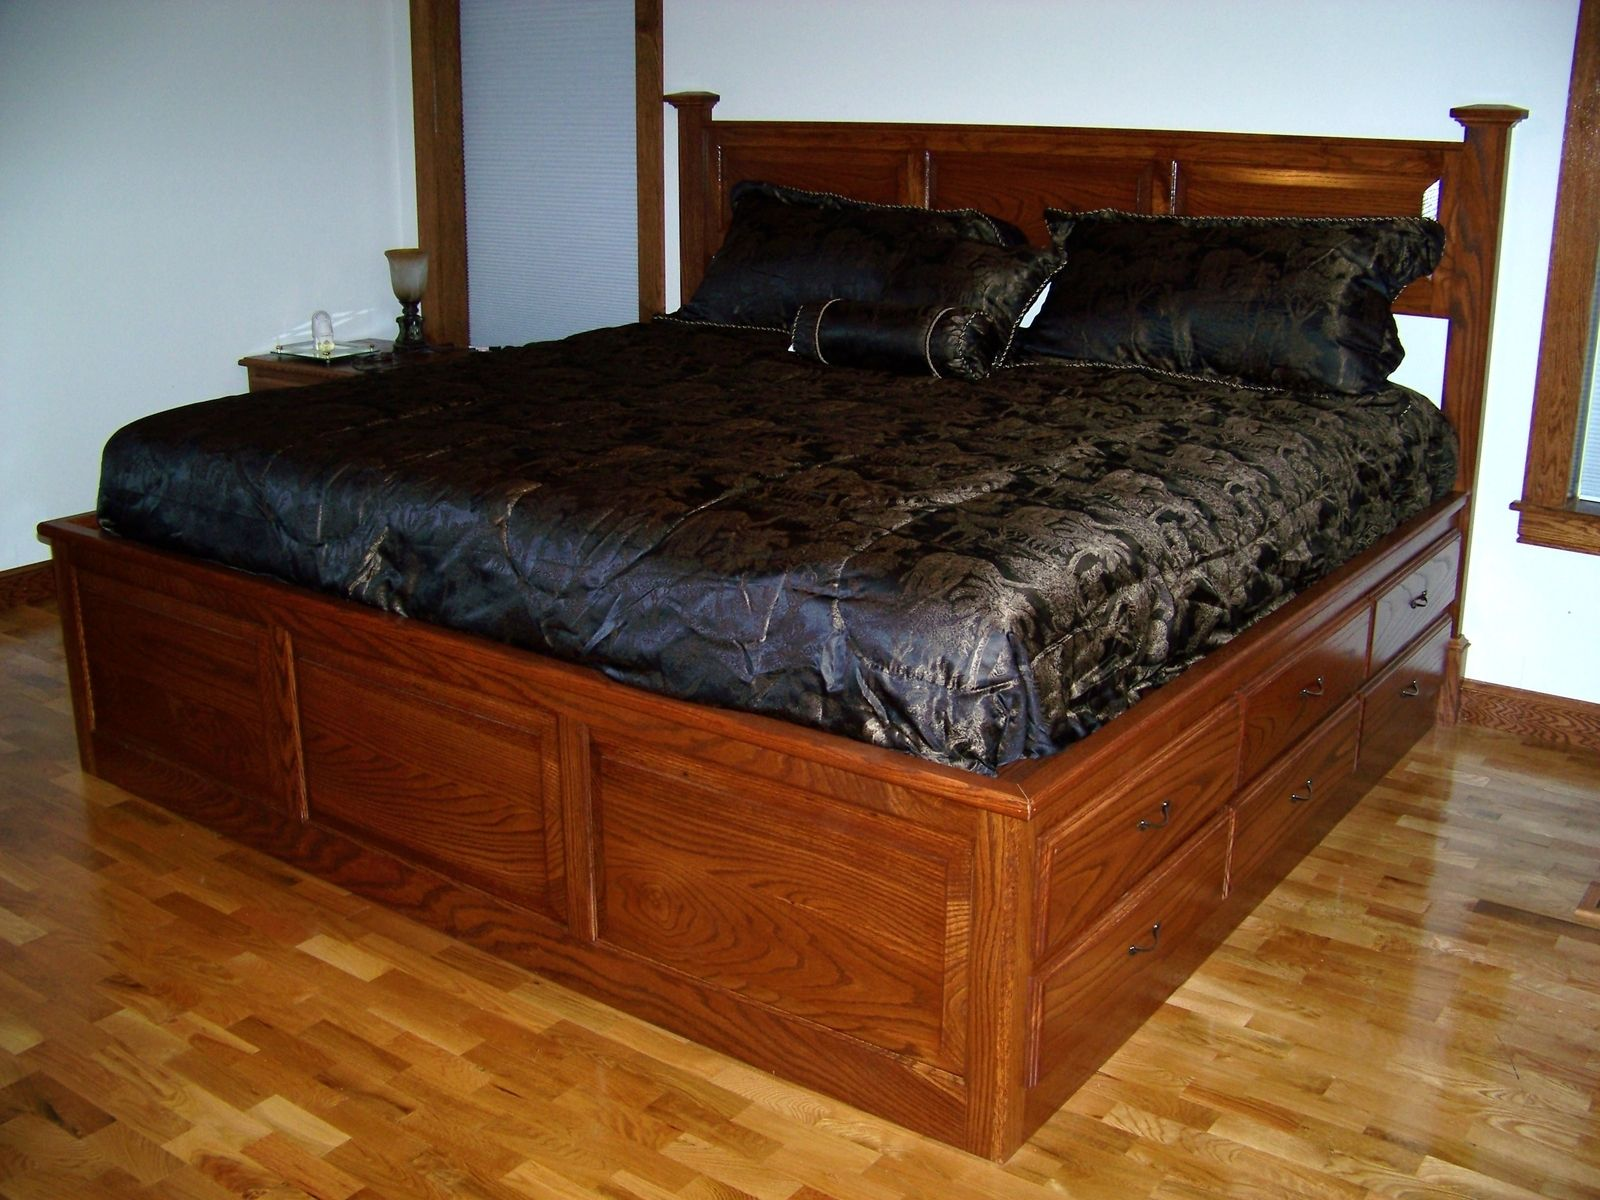 Custommade Beds Are Handcrafted By American Artisans With Quality Made